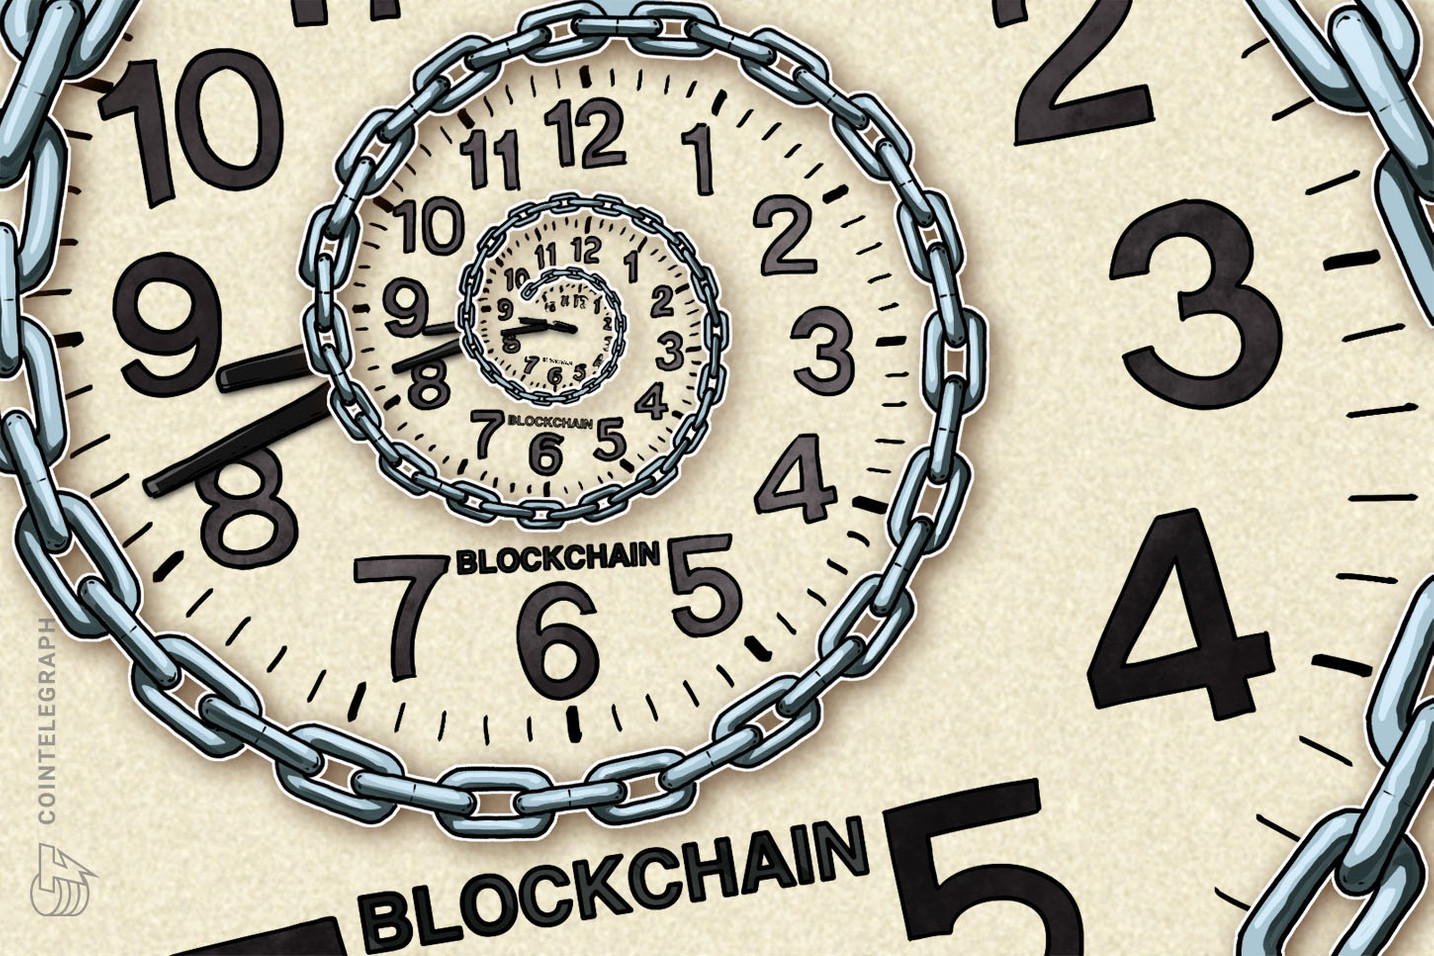 Oxford Business Law Blog: 'Radical Rethink' of Blockchain Regulation Is Imperative